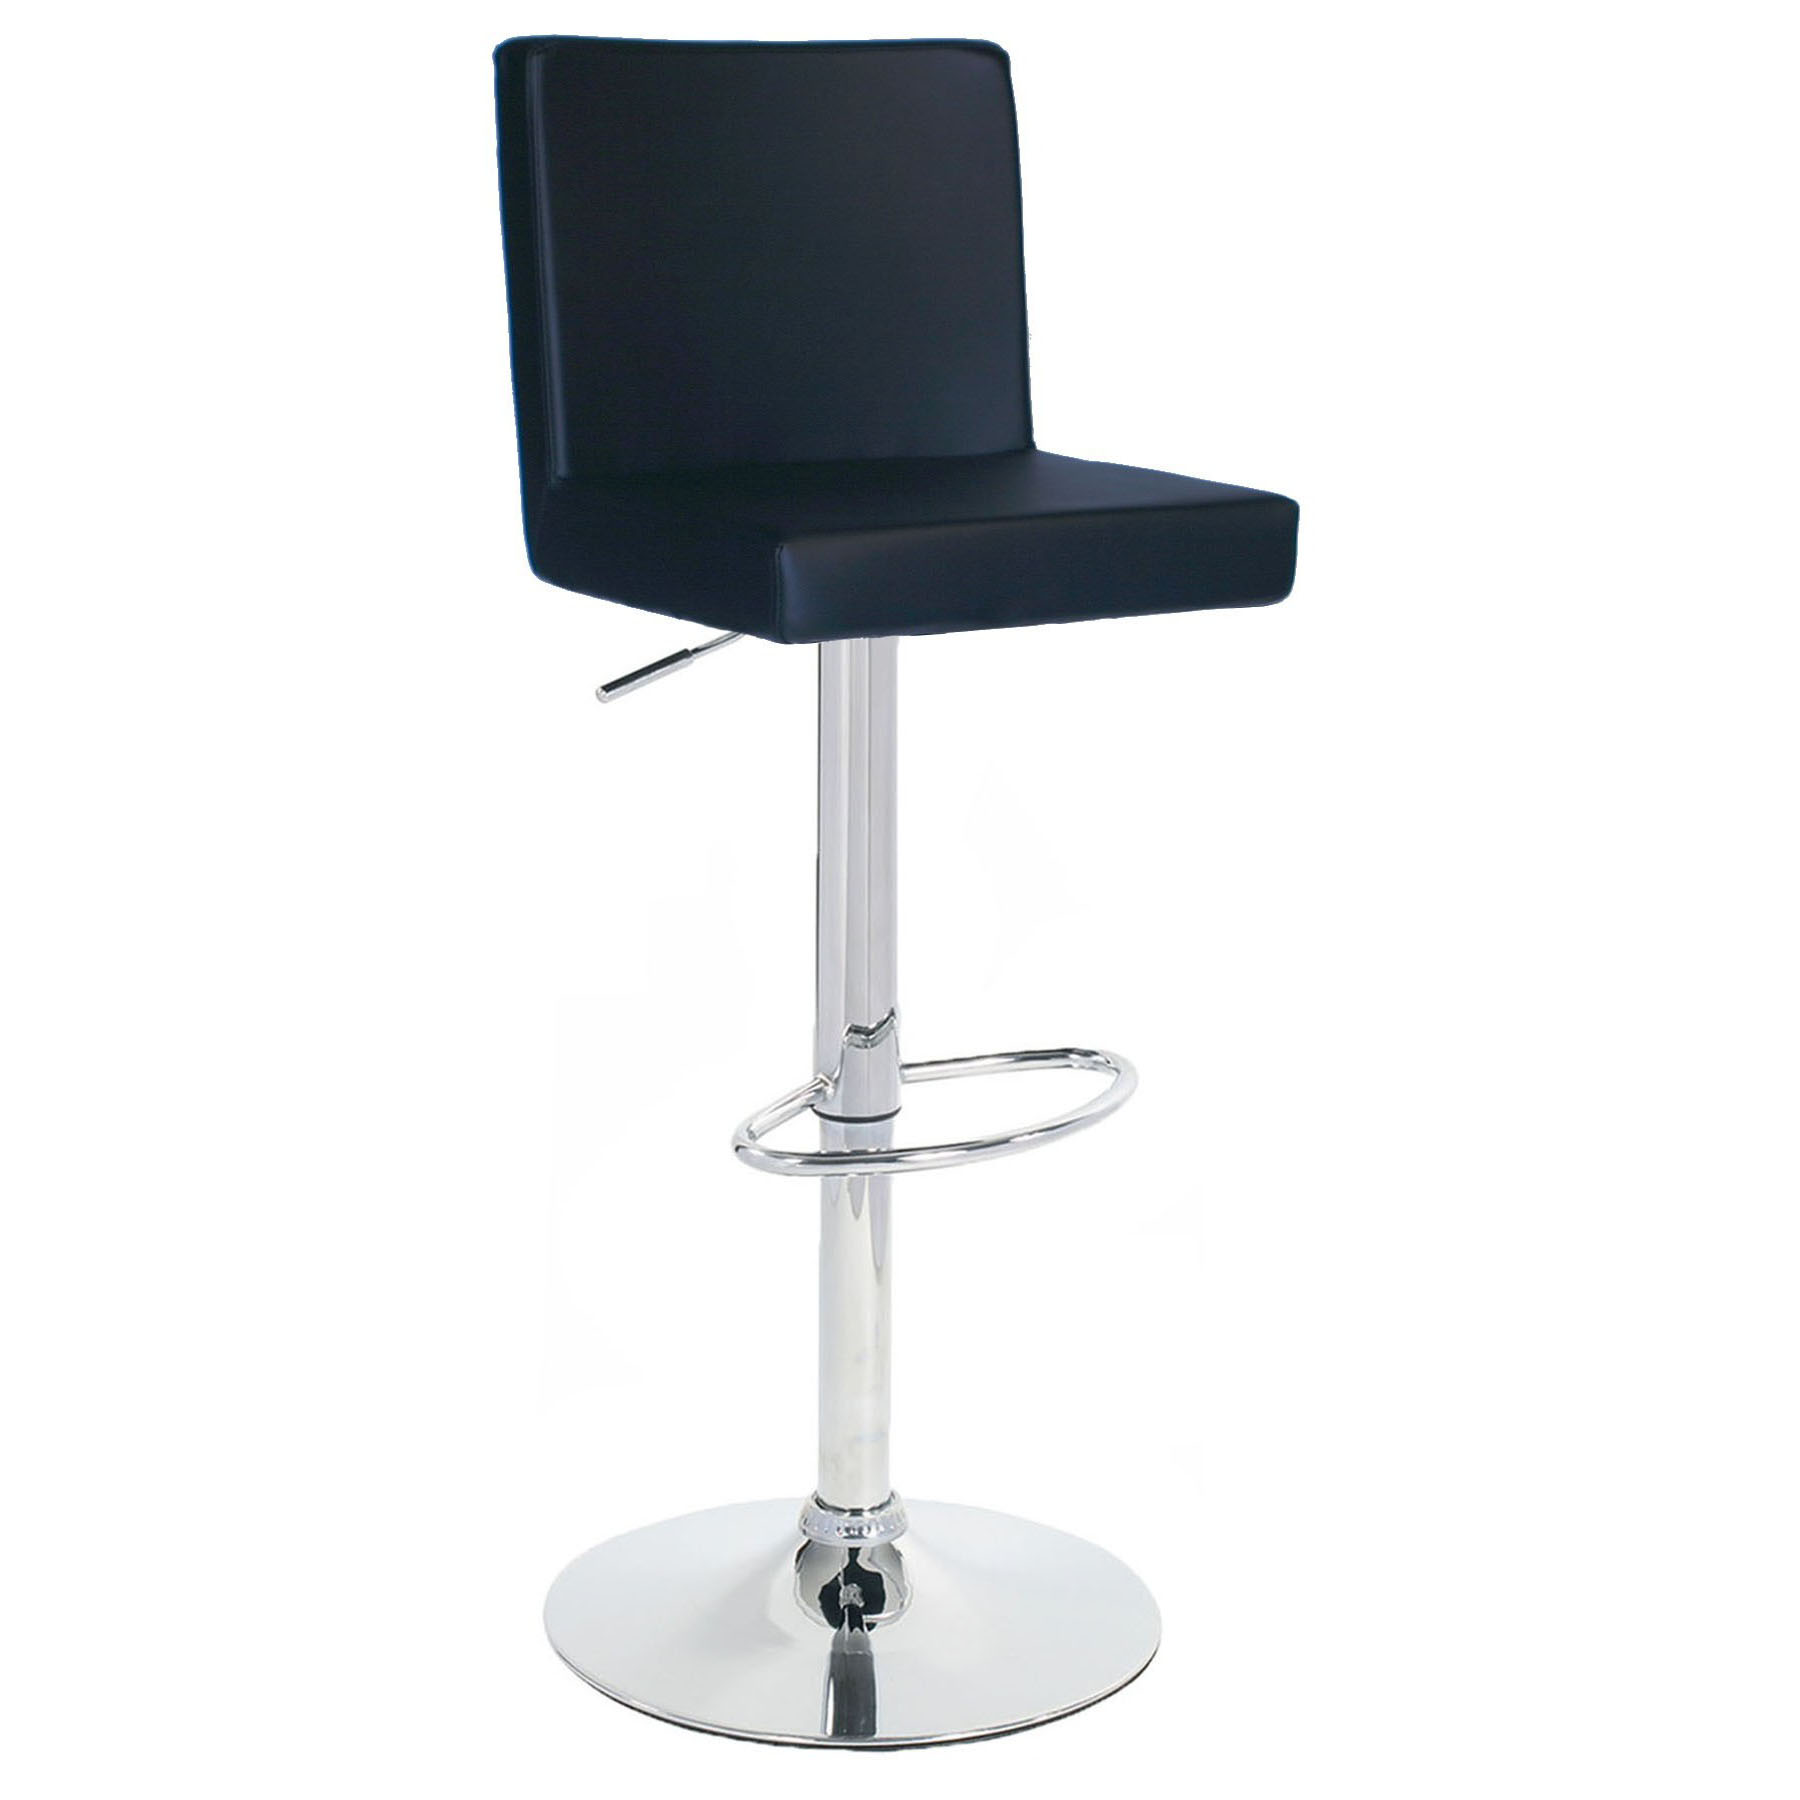 Alessa Bar Stool - Black Product Image